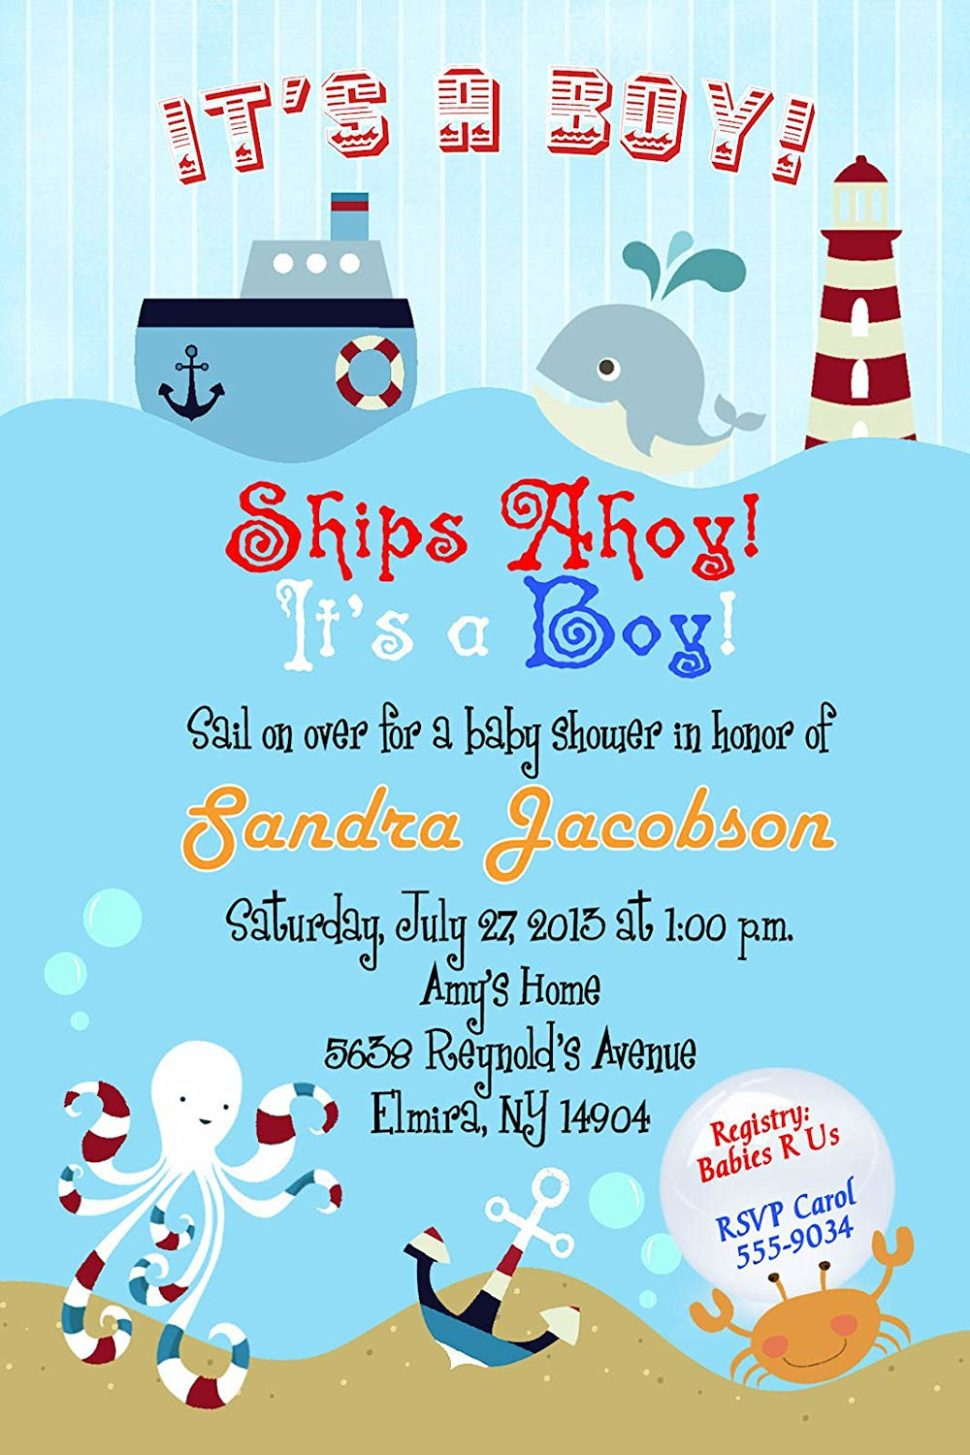 Medium Size of Baby Shower:baby Shower Invitations For Boys Homemade Baby Shower Decorations Baby Shower Ideas Nursery Themes For Girls Cheap Invitations Baby Shower Baby Shower Invitations Baby Shower Ideas Baby Shower Decorations Free Baby Shower Ideas